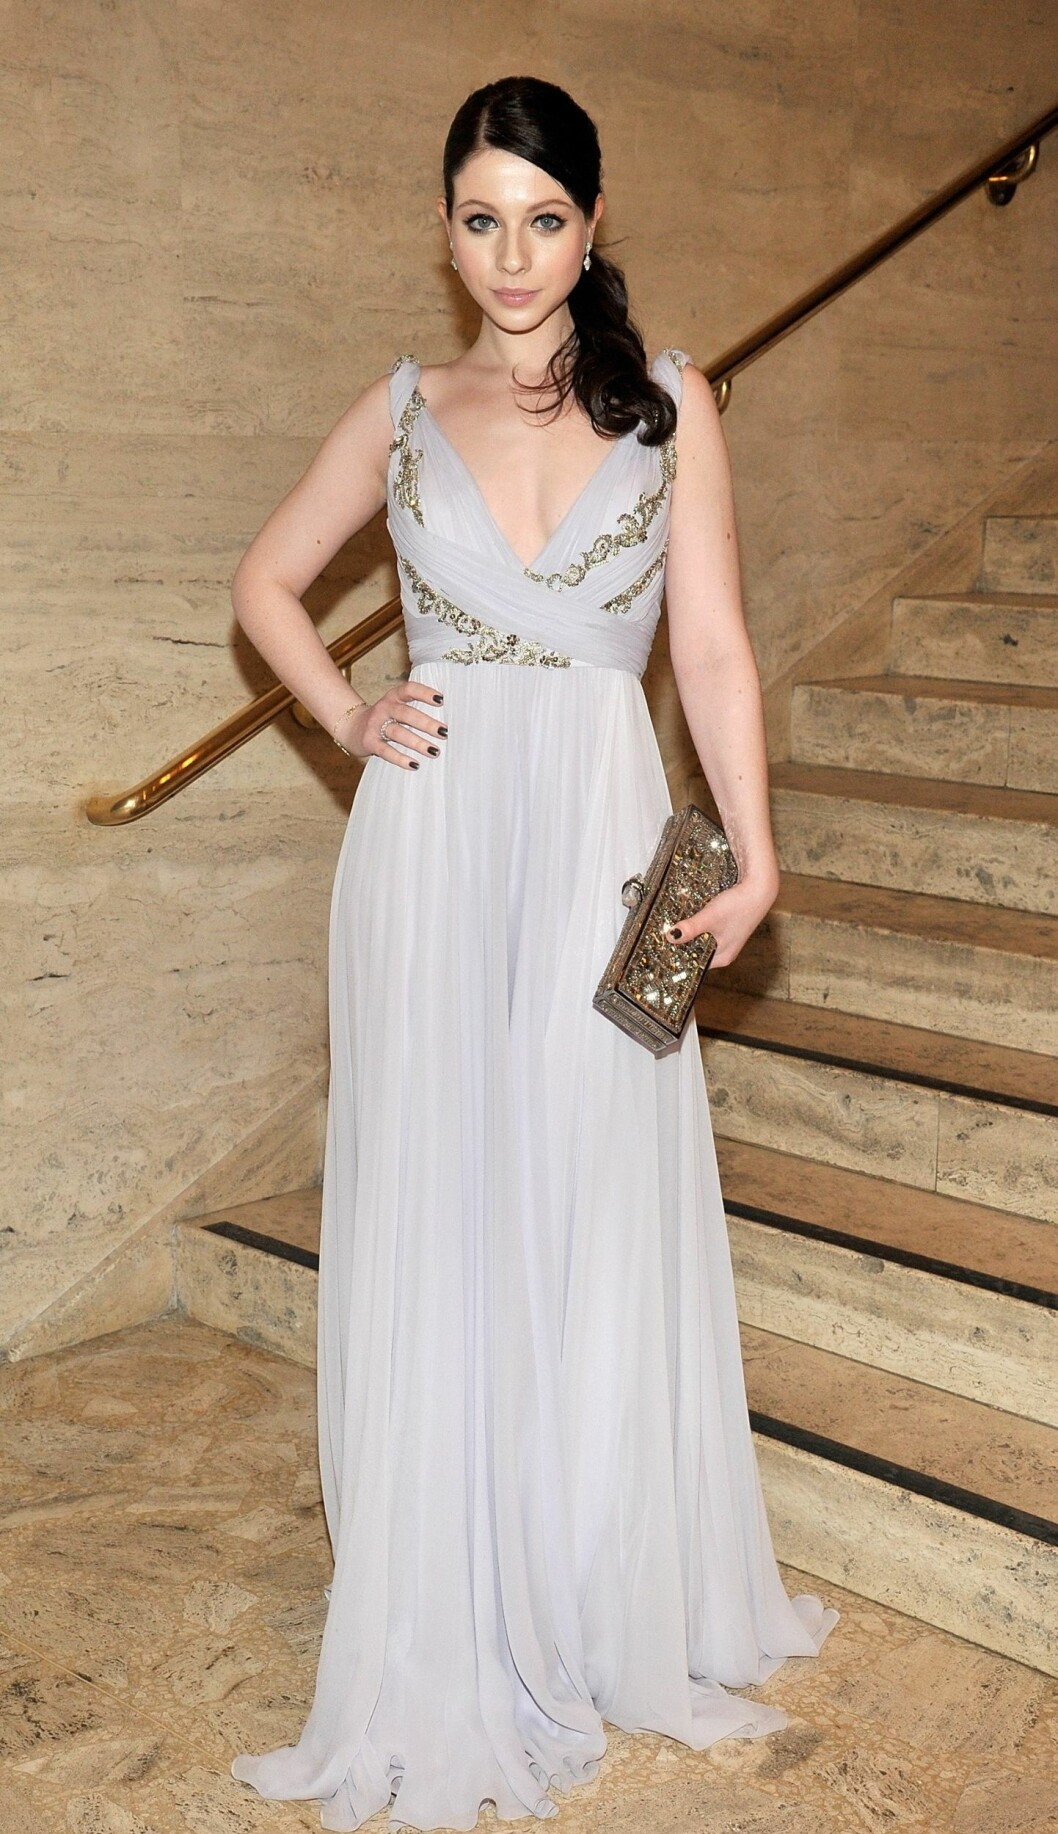 NEW YORK, NY - MARCH 14:  Actress Michelle Trachtenberg attends the 2011 School of American Ballet Winter Ball at David H. Koch Theater, Lincoln Center on March 14, 2011 in New York City.  (Photo by Joe Corrigan/Getty Images) By: All Over Press / Getty Images CODE: GE01X8 Foto: All Over Press